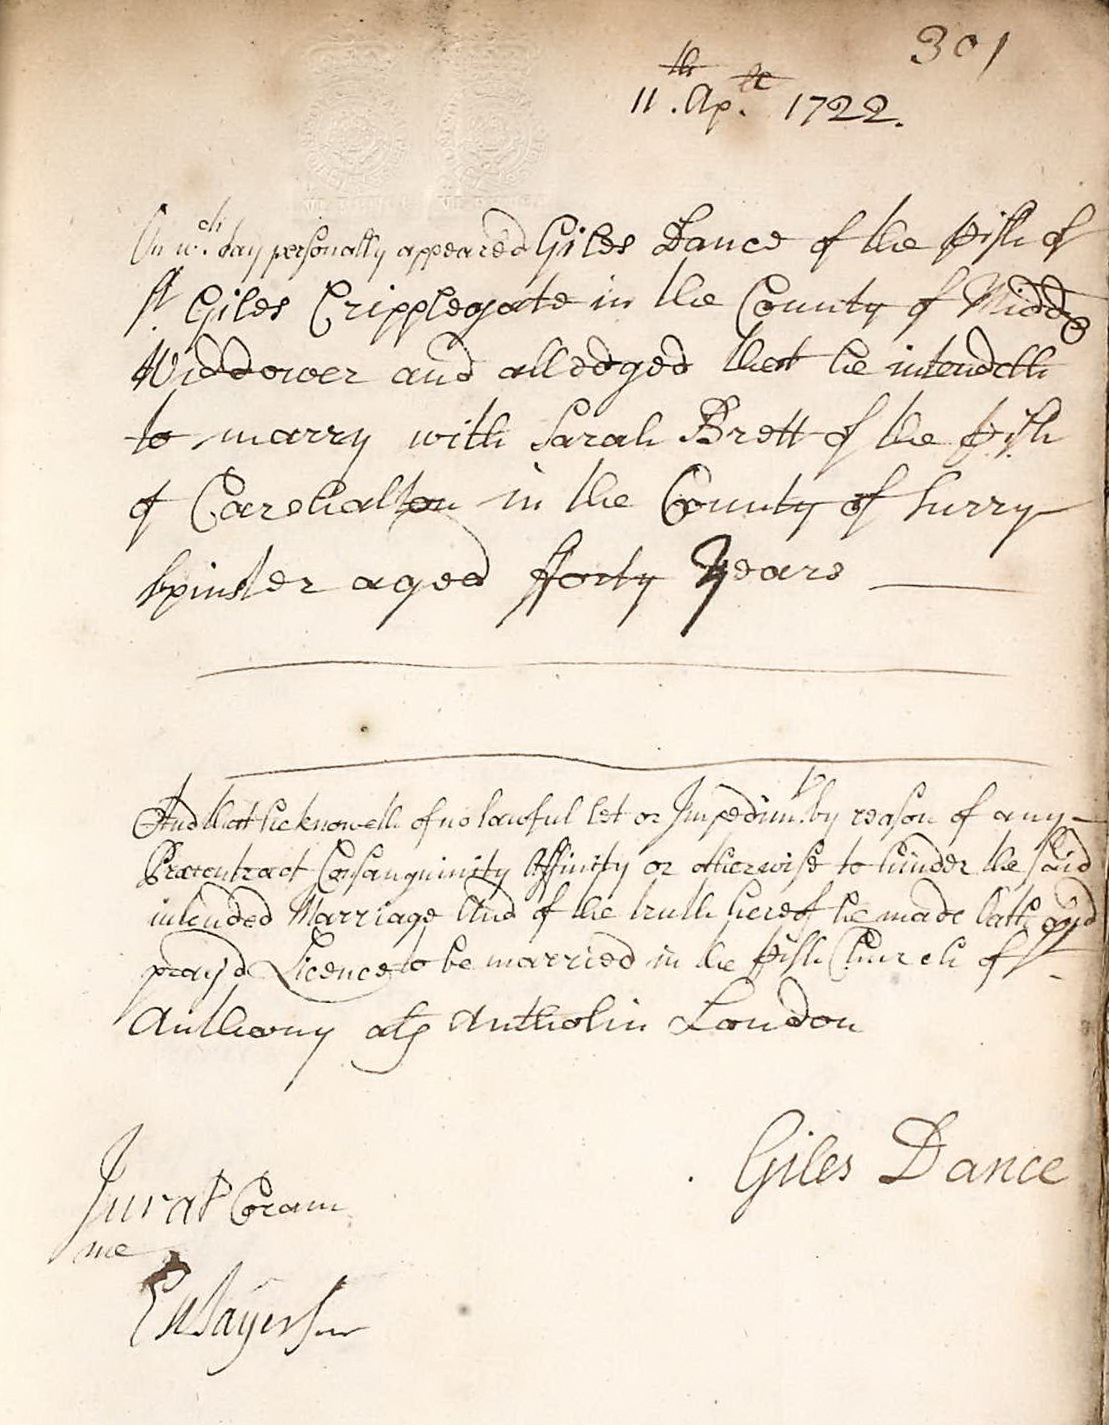 Marriage Allegation made by Giles Dance 11 April 1722